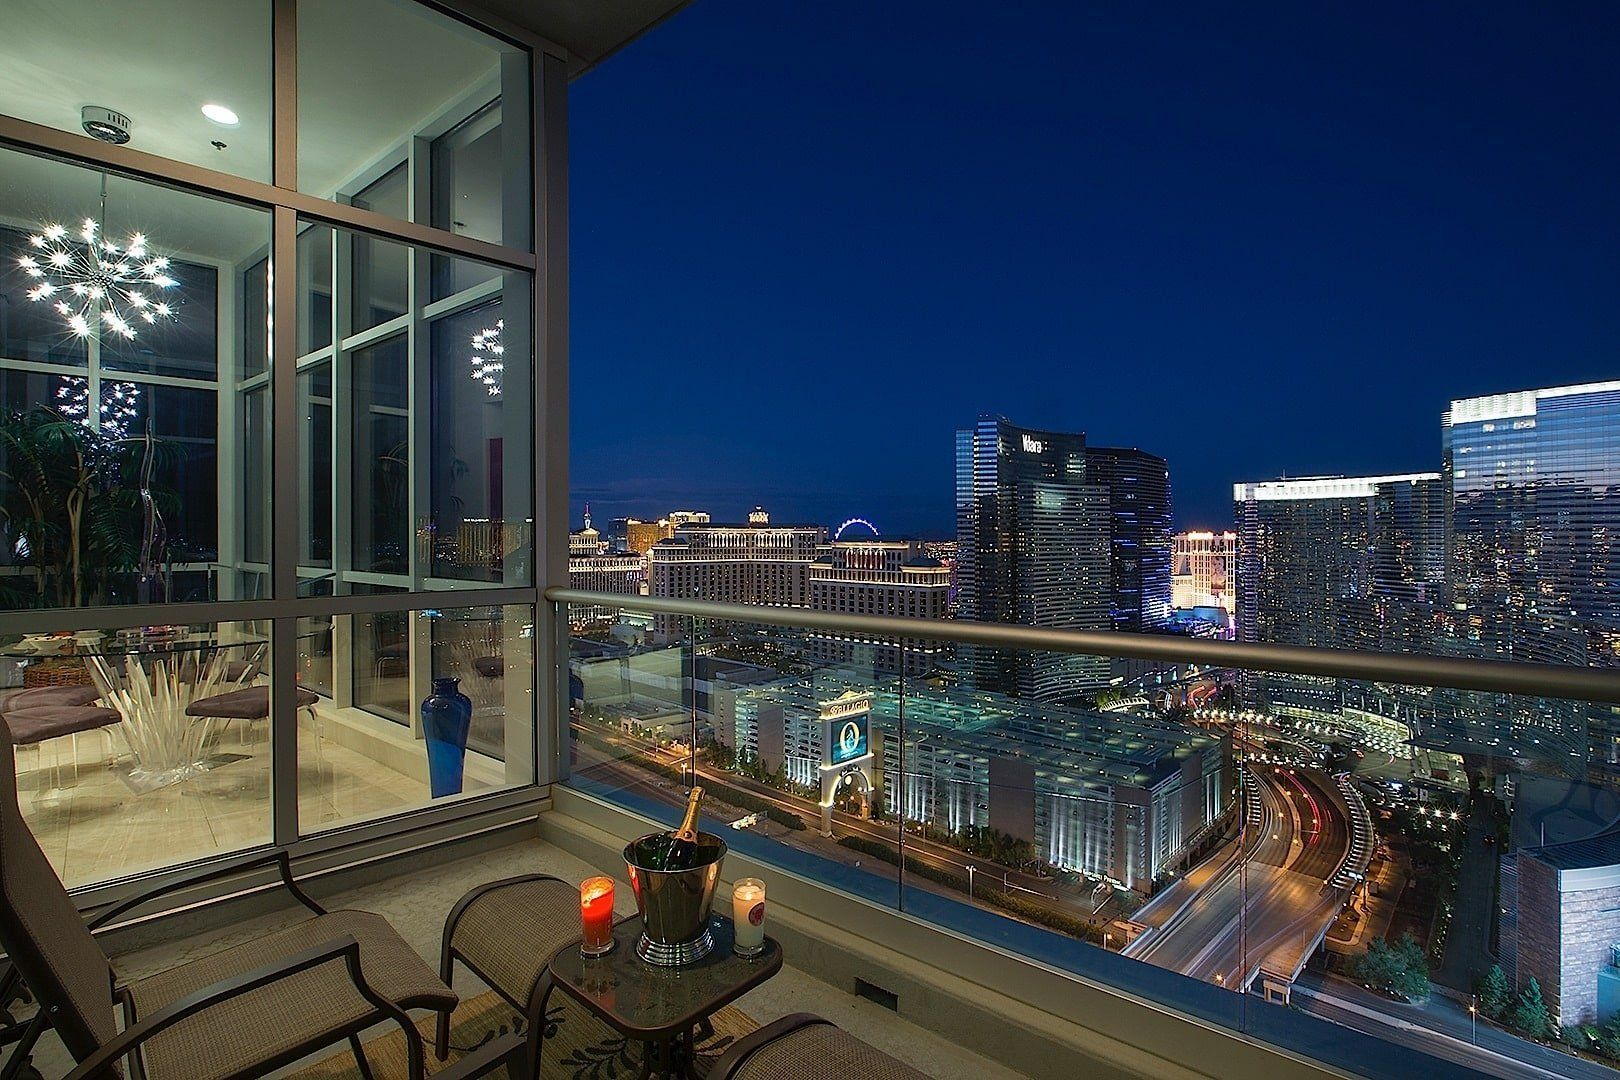 Allure Las Vegas High Rise Condos Condominiums For Sale Allure Las Vegas High Rise Condos Las Vegas Real Estate Penthouse For Sale Las Vegas Homes